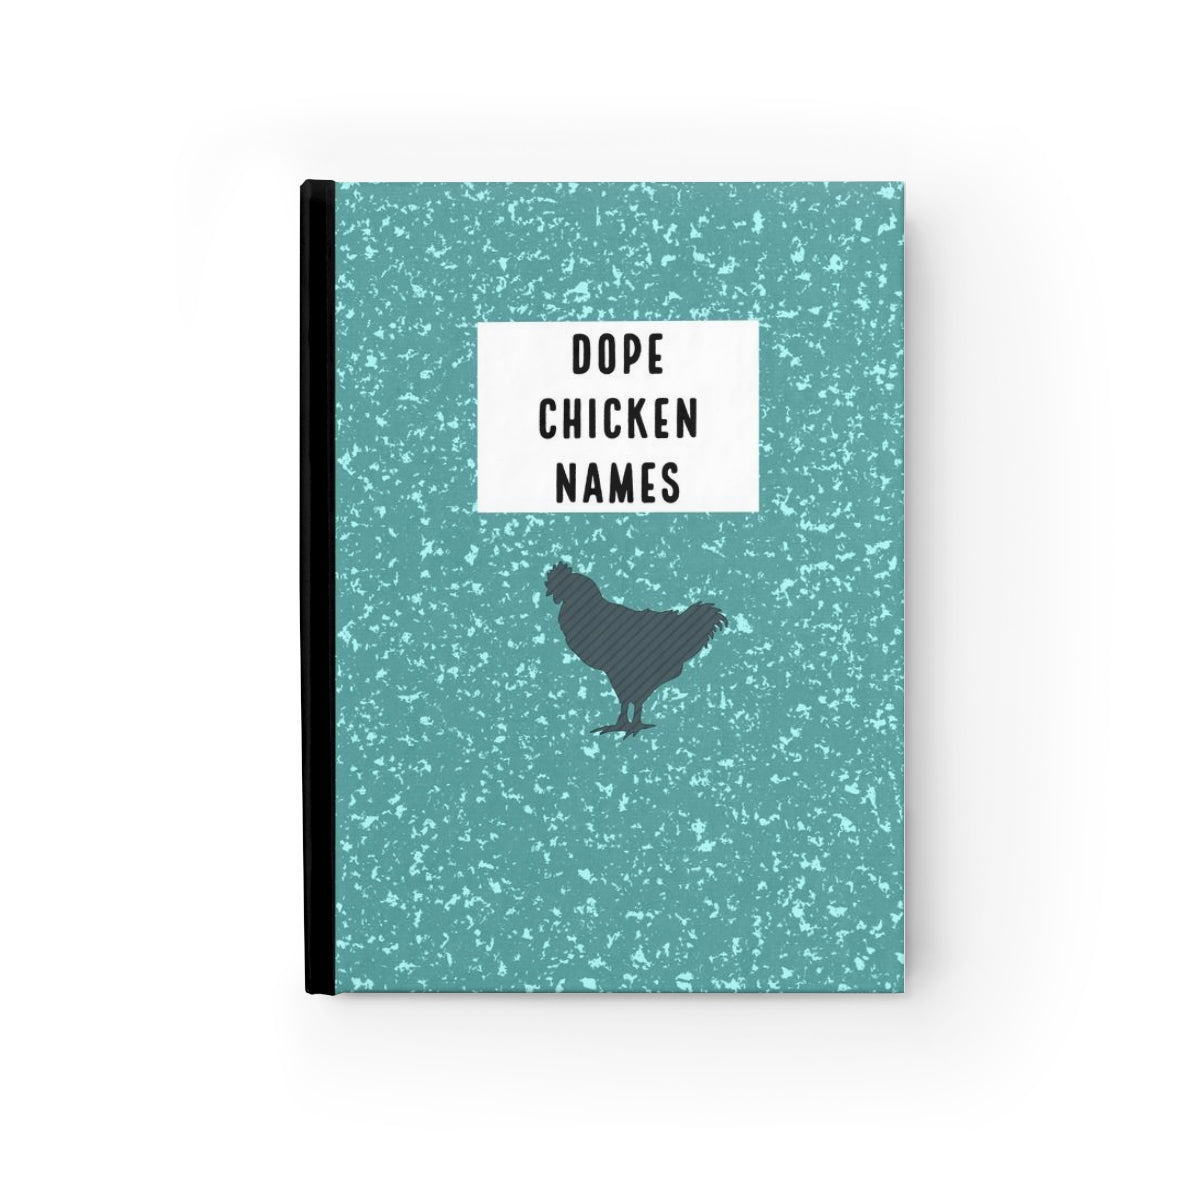 Dope Chicken Names Journal - Ruled Line